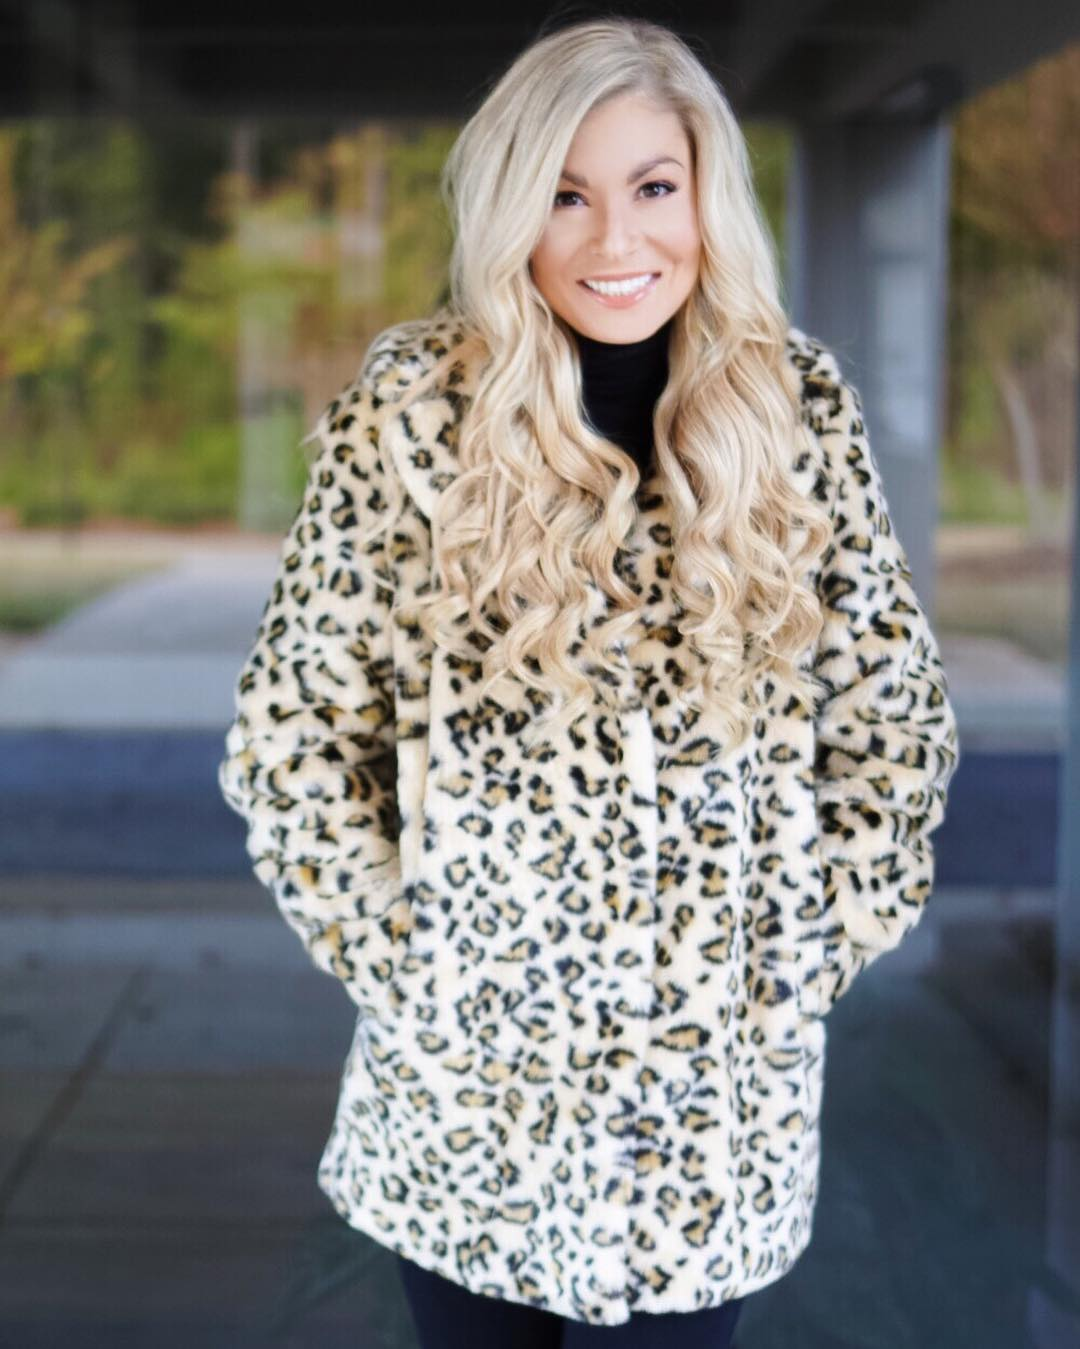 Becauseeeee leopard is the new neutral!! #cantgetenough #meow http://liketk.it/2pxNl #liketkit #wiw #ootd #fall #fallfashion #leopardlover